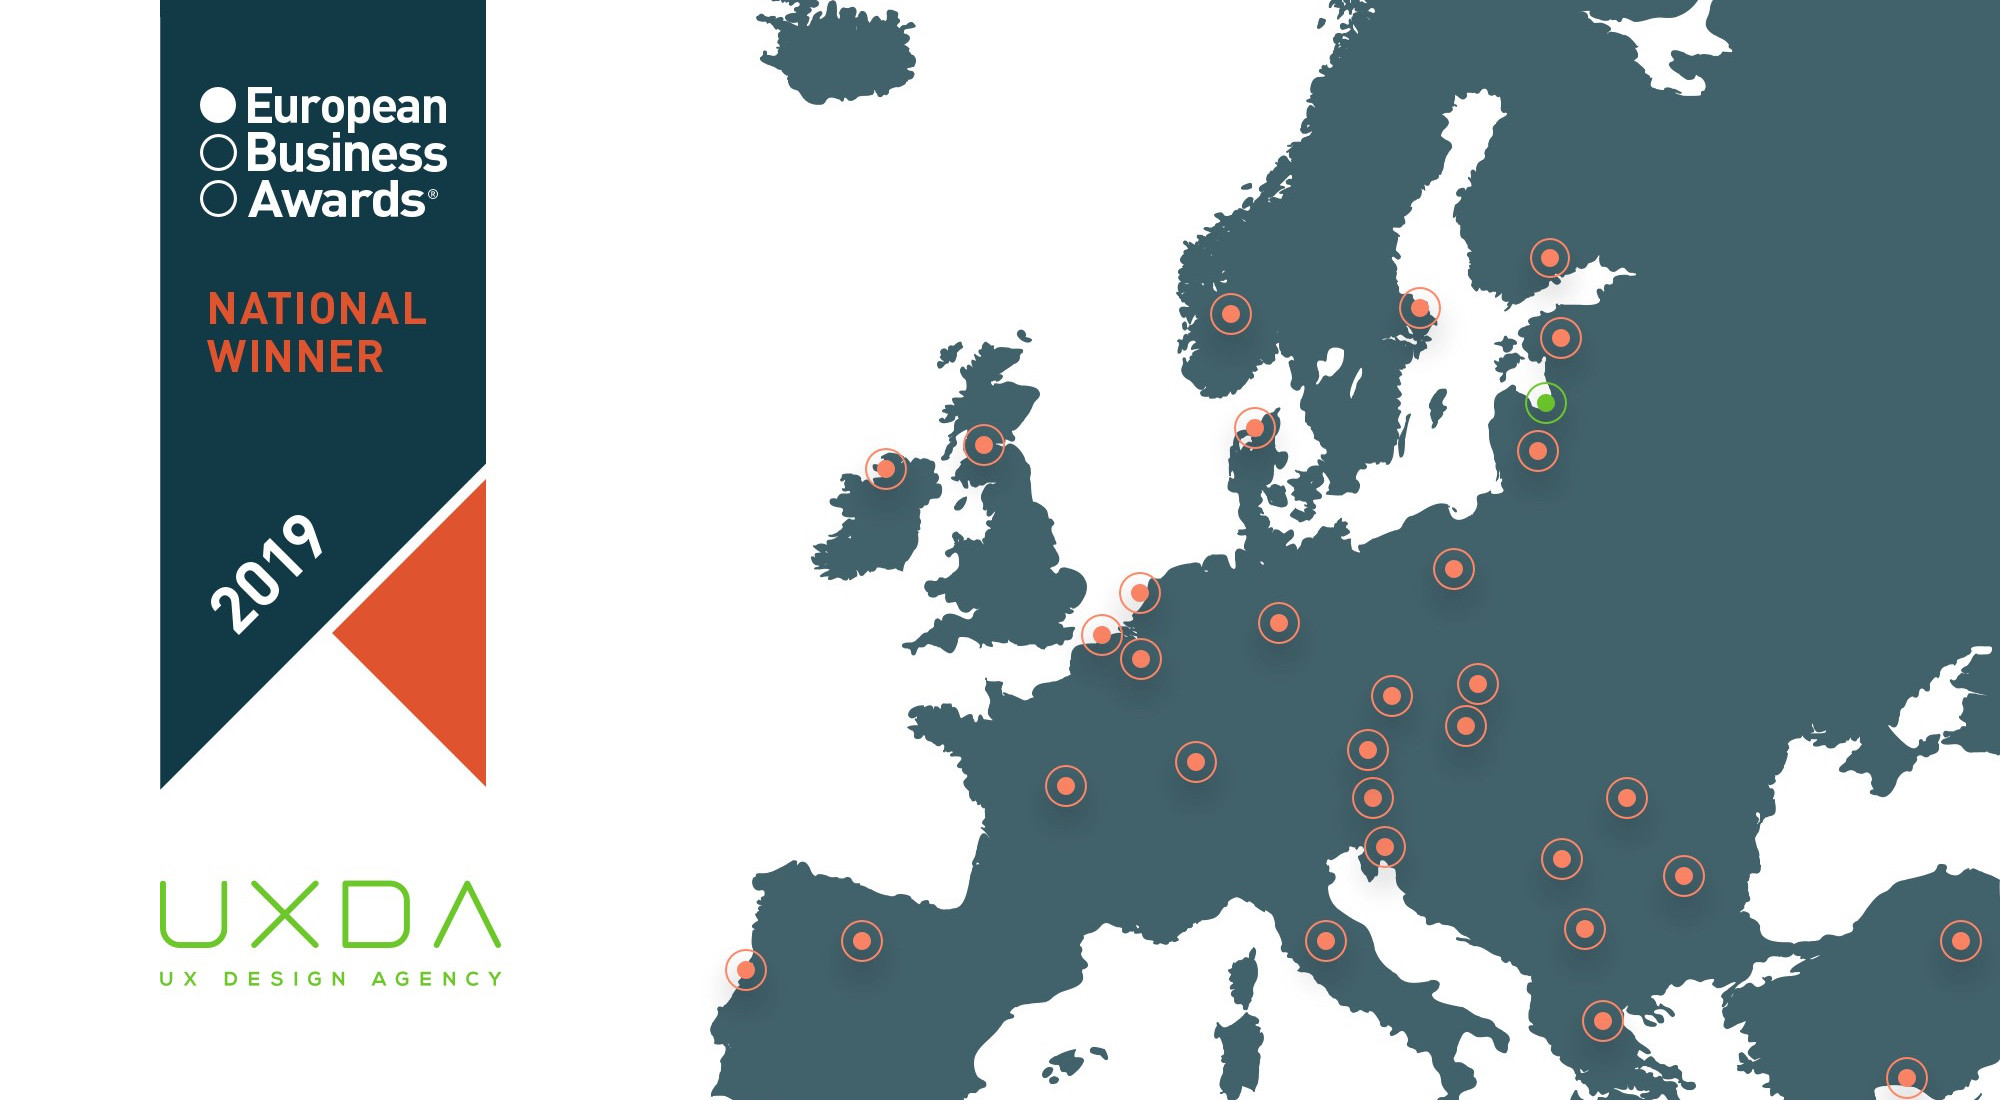 UXDA Becomes the National Winner of the 2019 European Business Awards